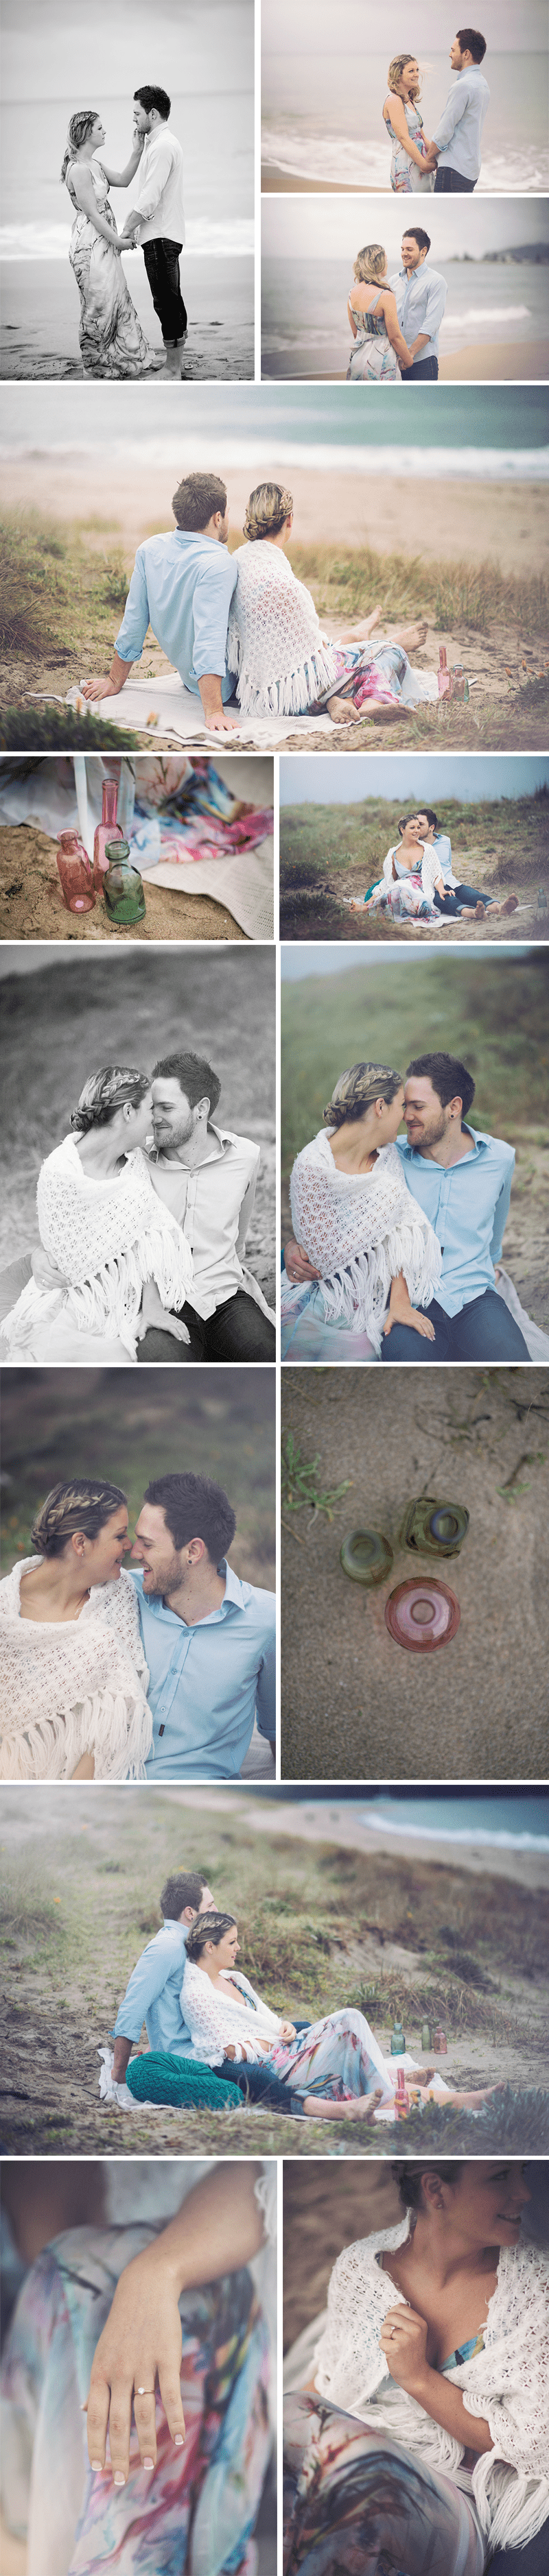 Beach Engagement 3